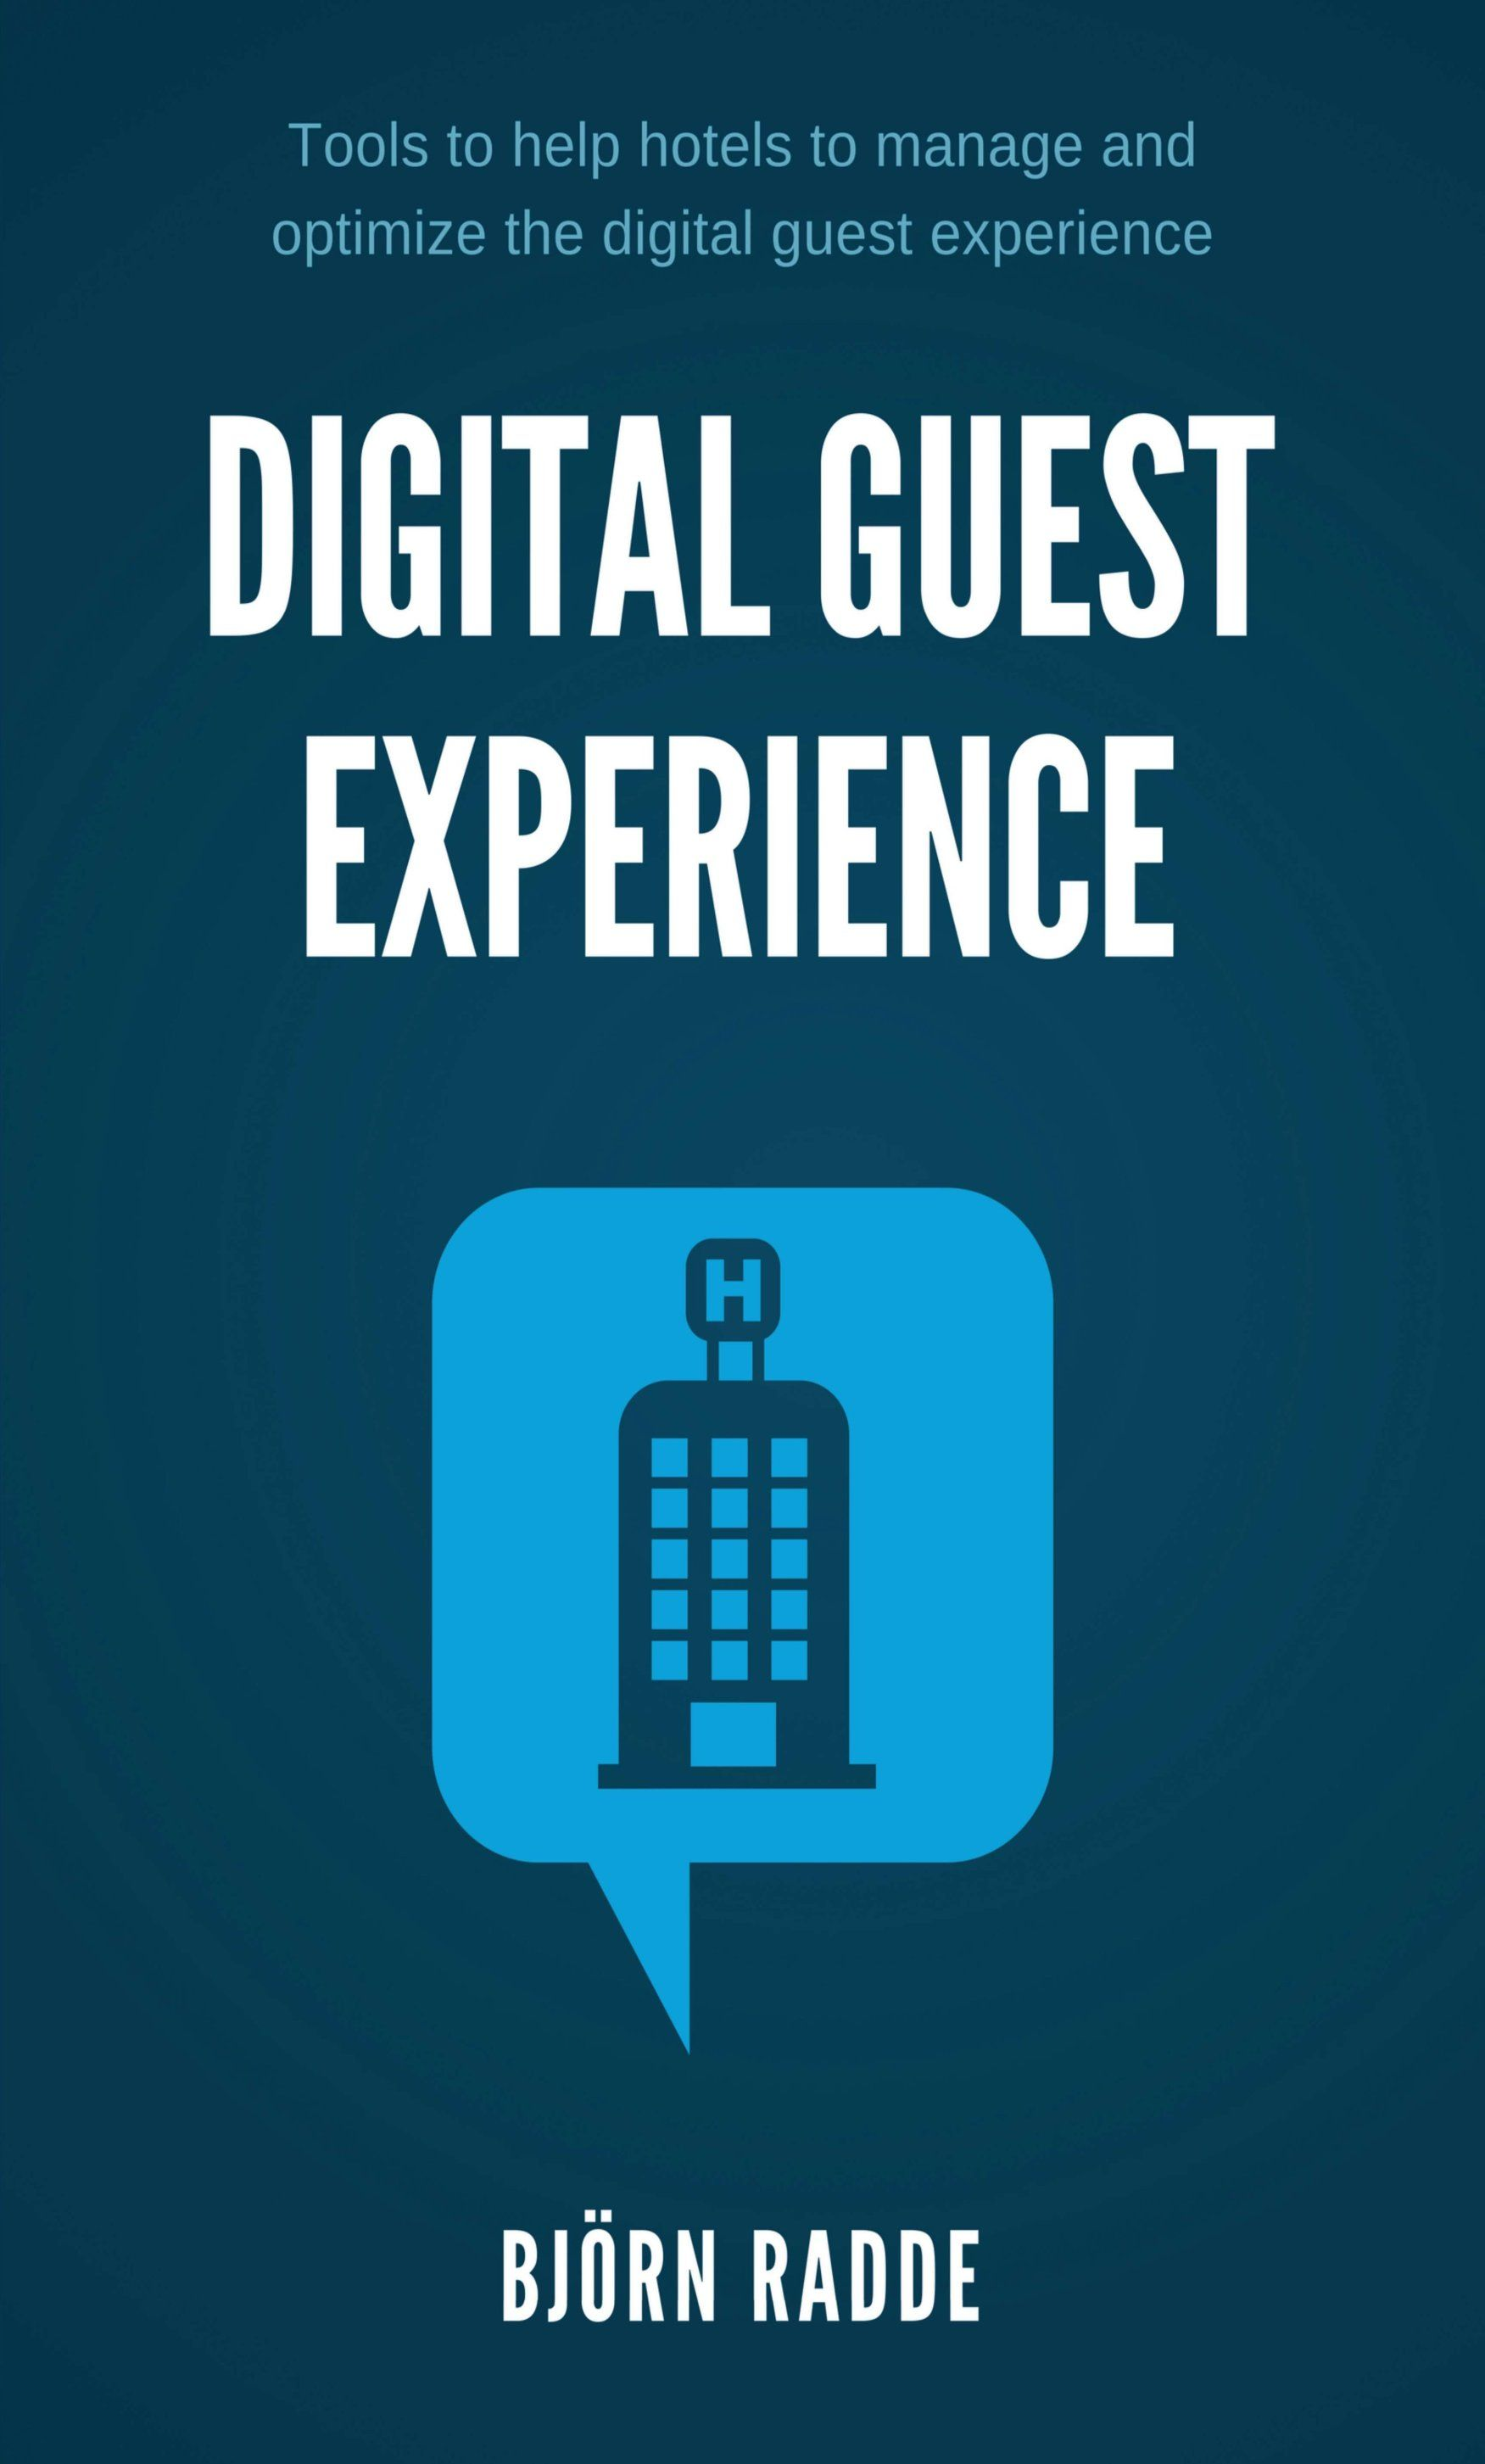 Digital Guest Experience Tools Every Hotel Should Use